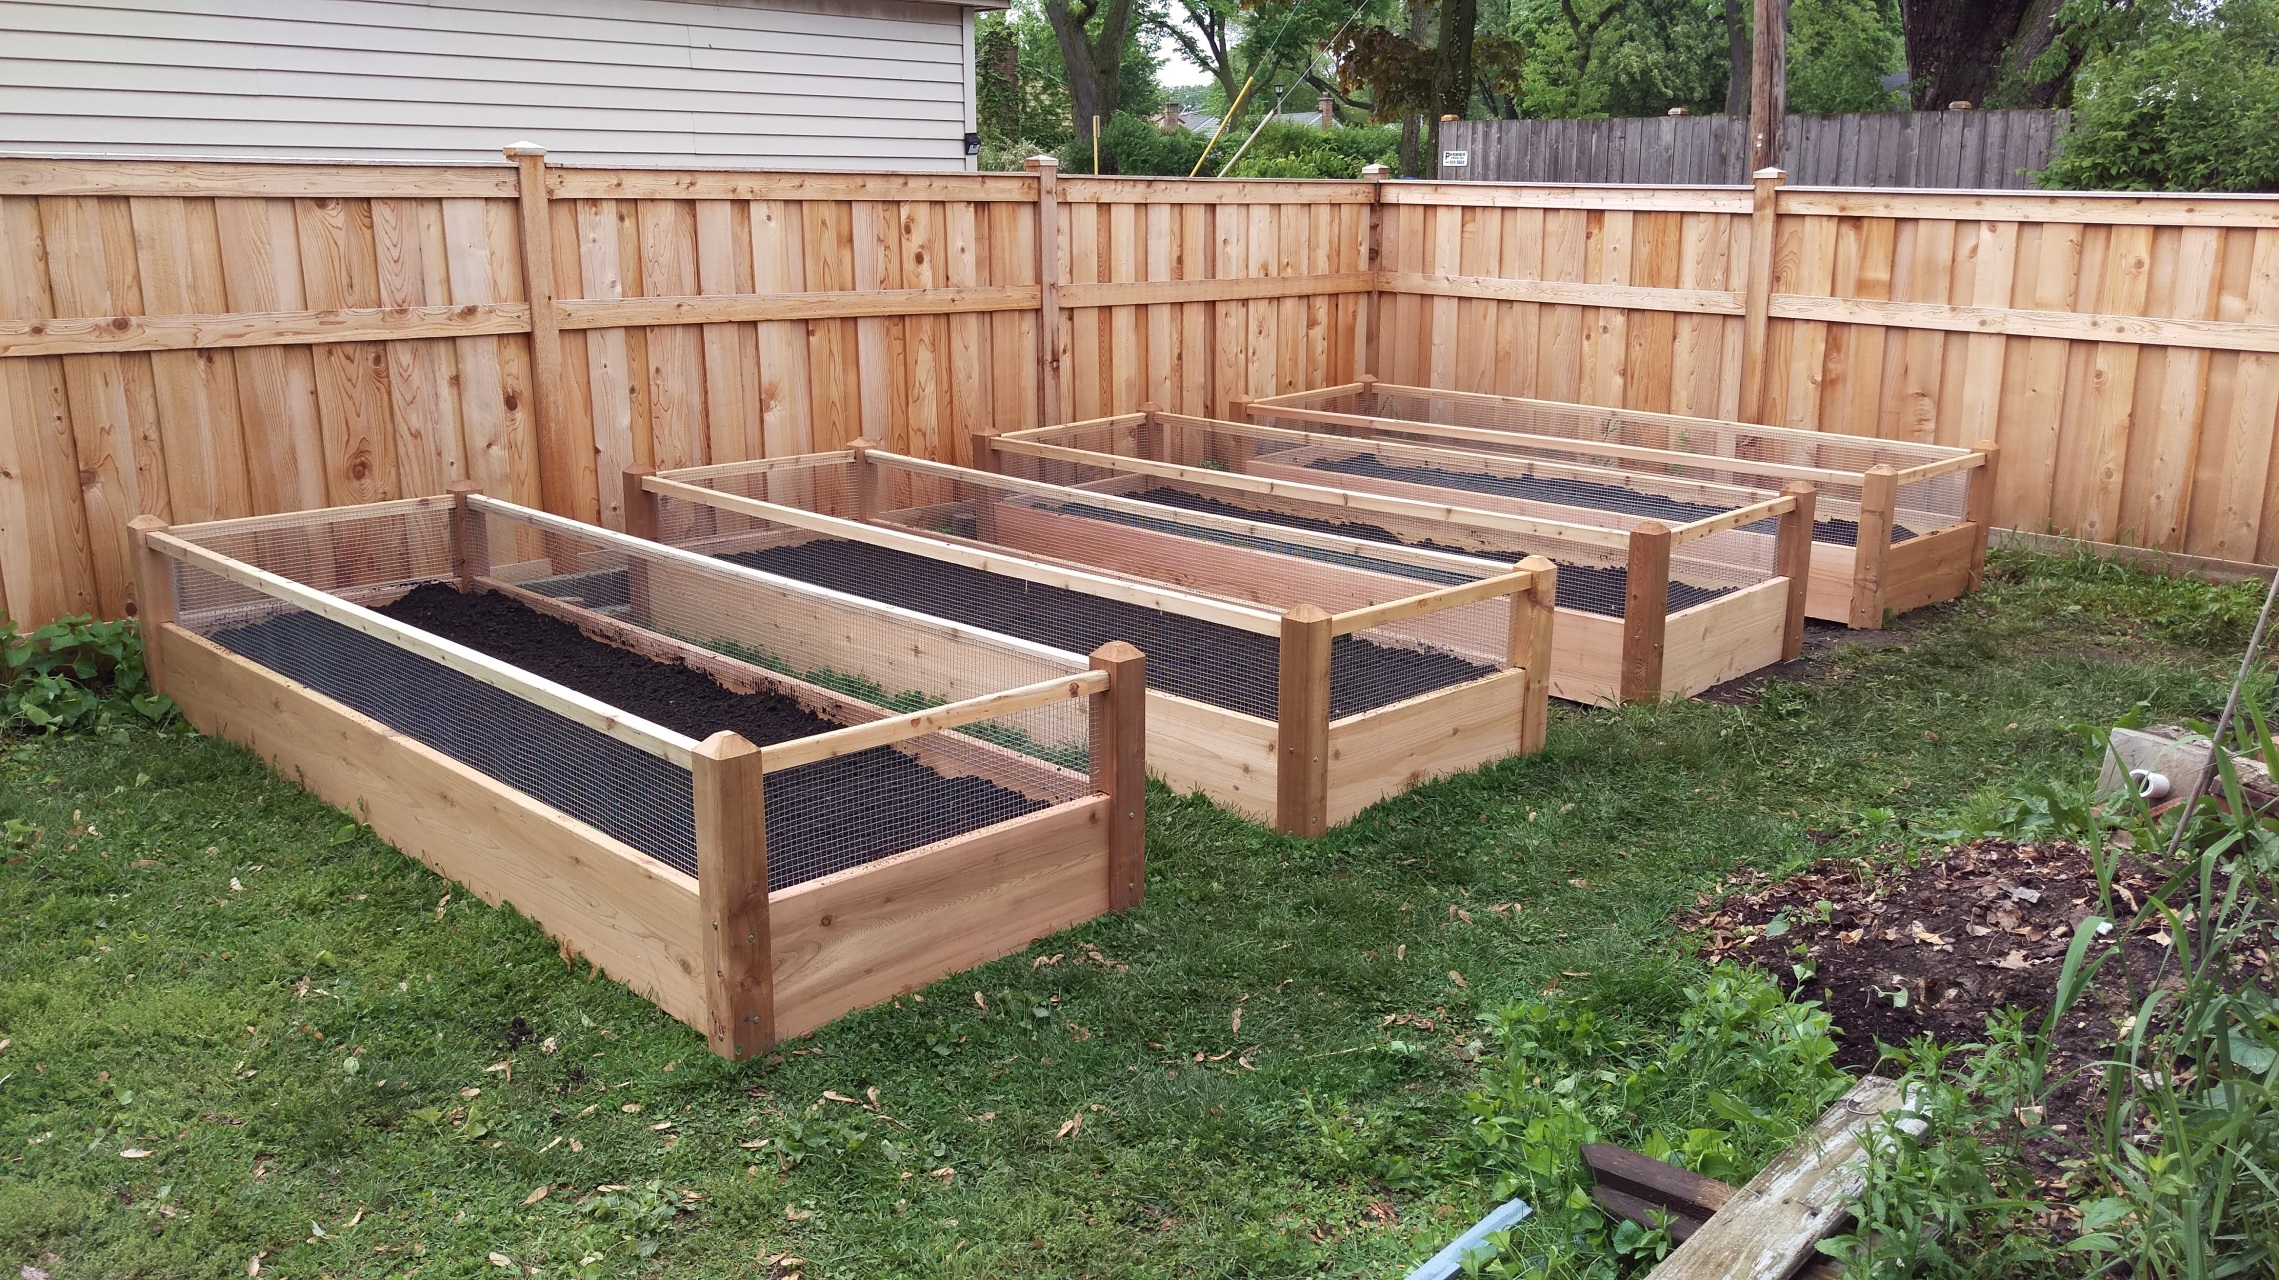 4 four raised bed gardens 3x8x2 - Raised Bed Garden Design Ideas